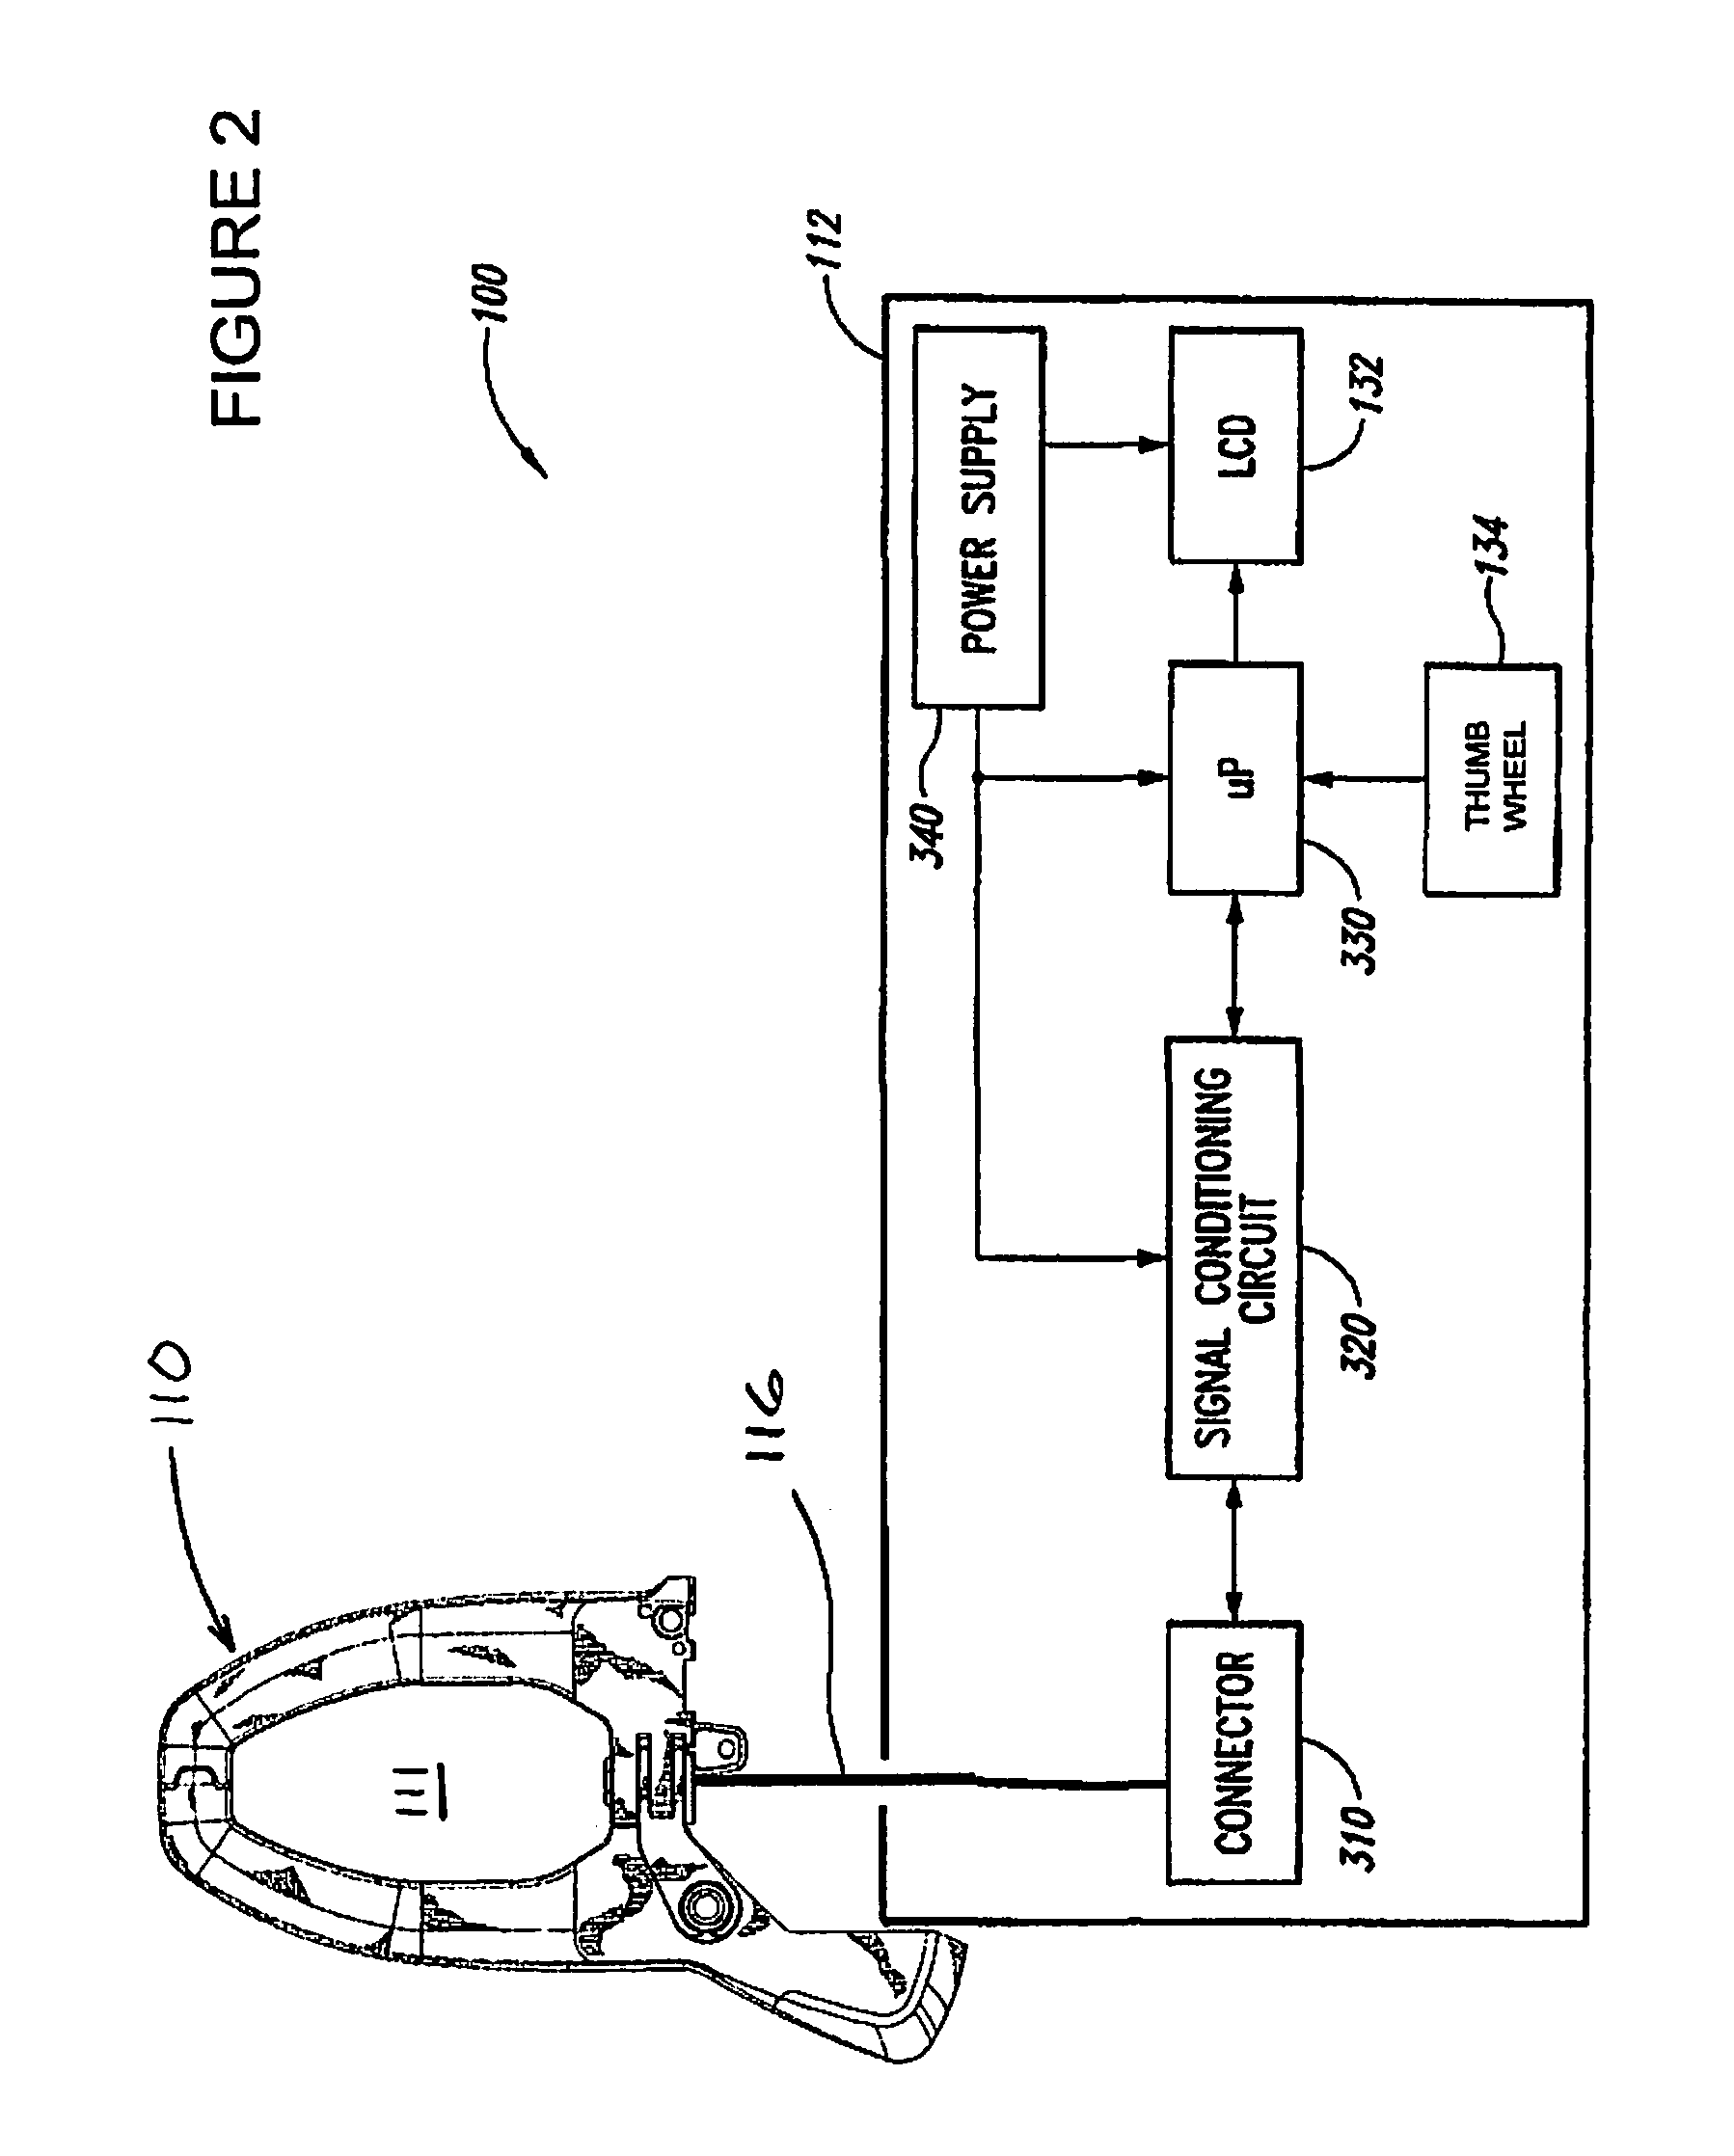 Patent Us20120169324 Simplified Jaw Assembly For A Clamp